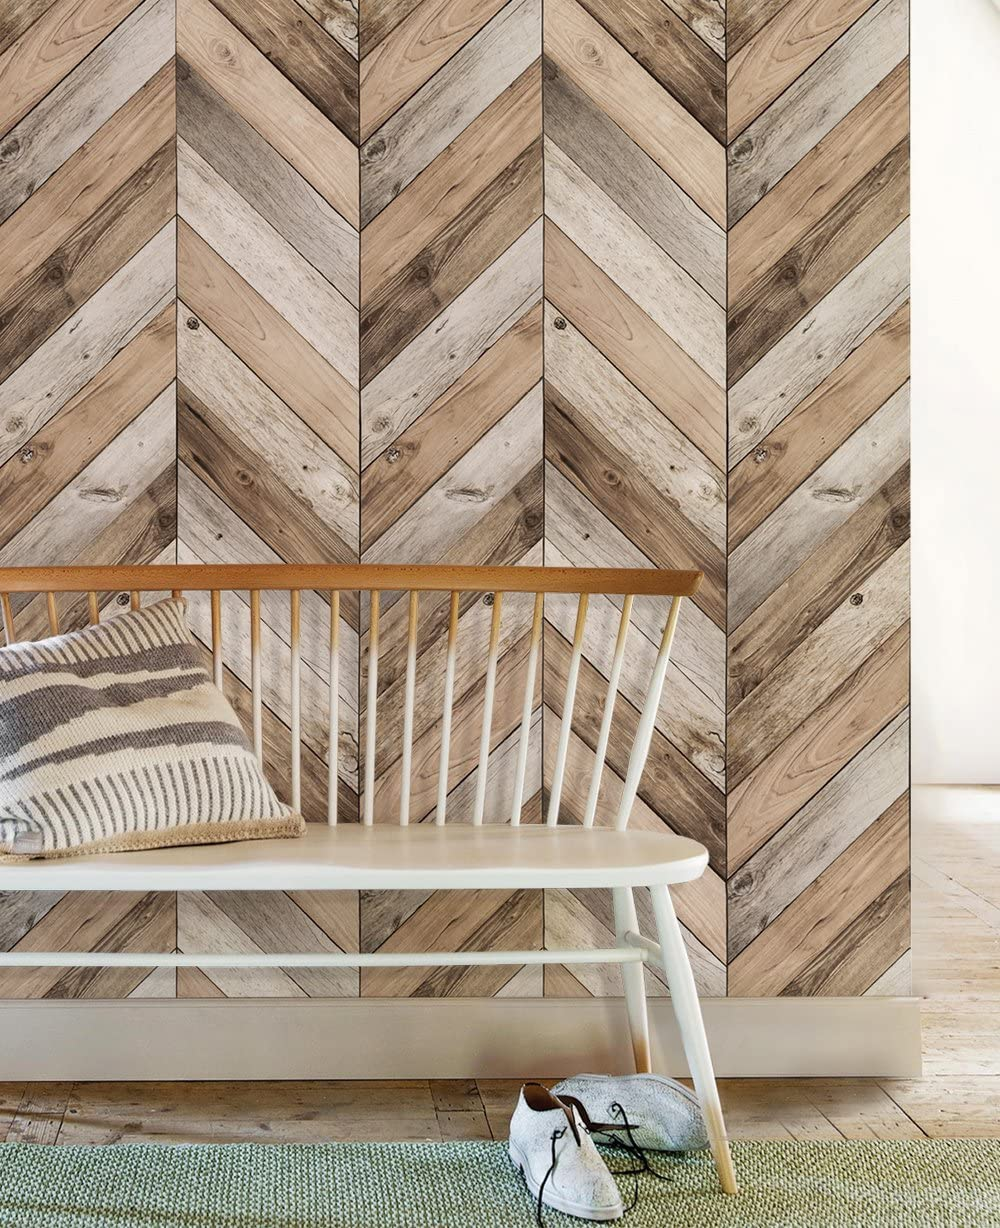 Chevron Wood Wallpaper Peel And Stick 2 Ft X 4 Ft Single By Simple Shapes Amazon Com